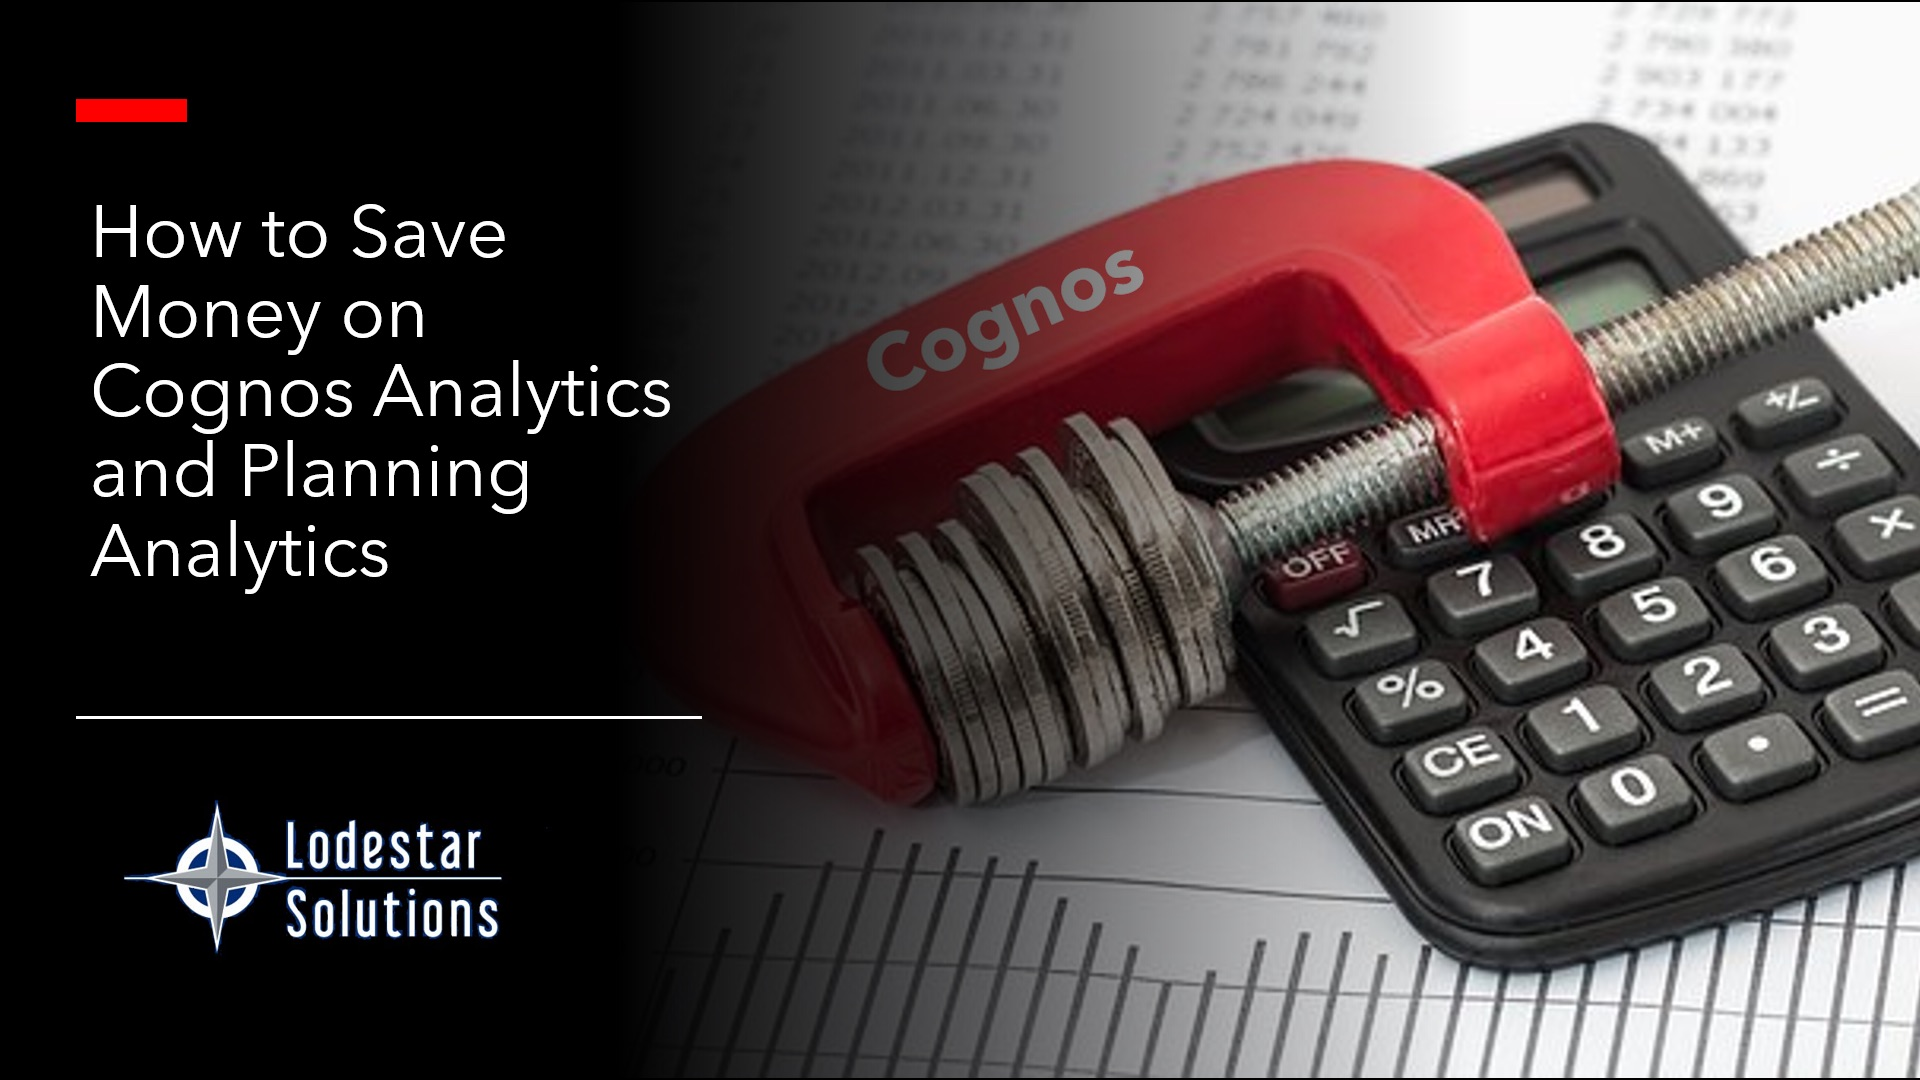 Cognos Saving Money